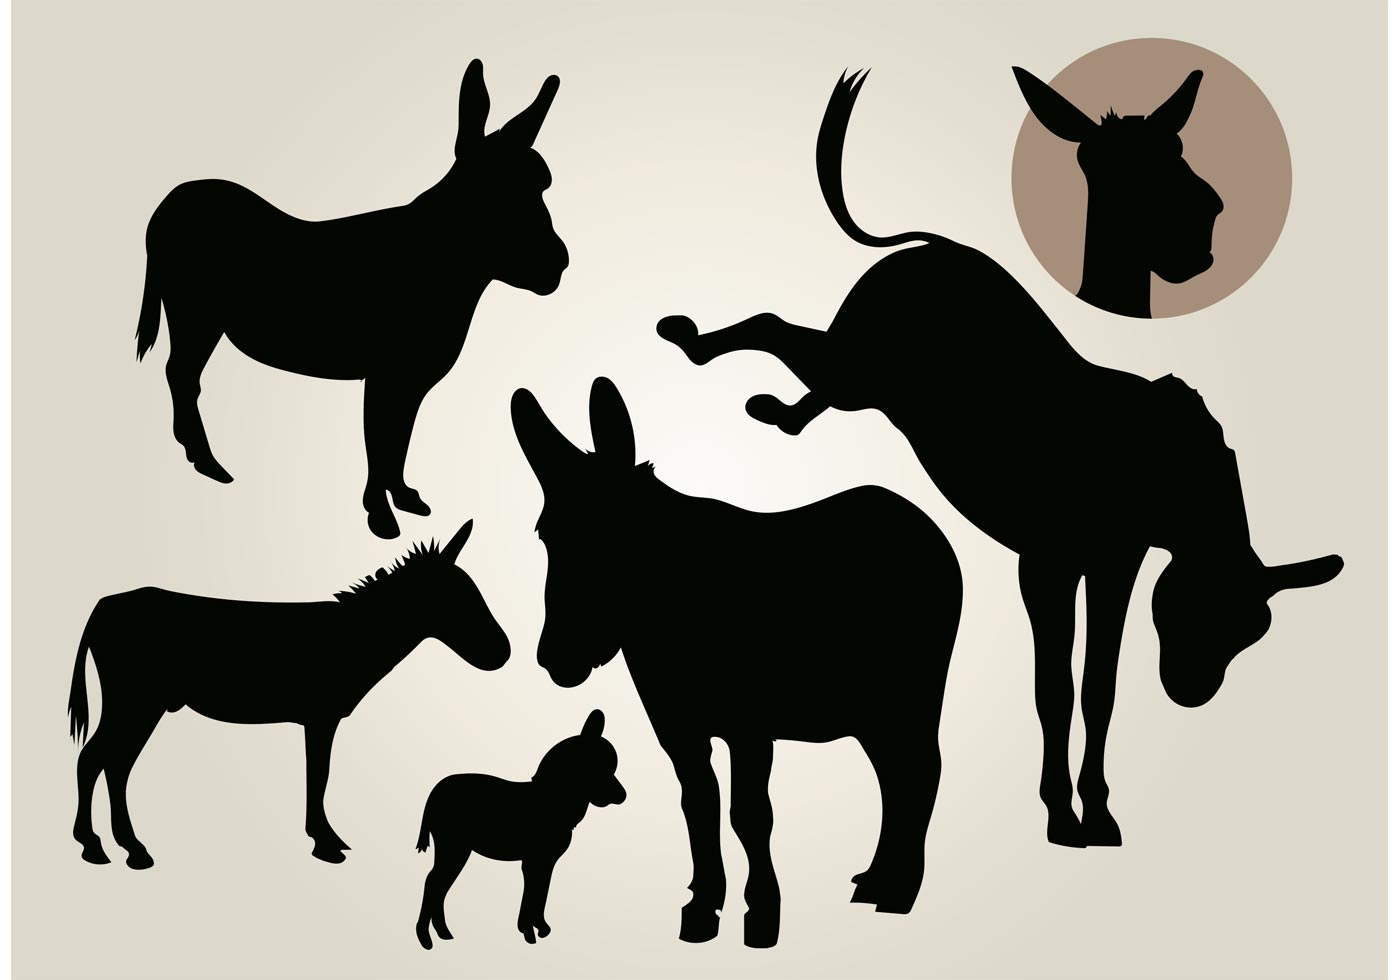 Donkey Silhouette Free Vector Art.